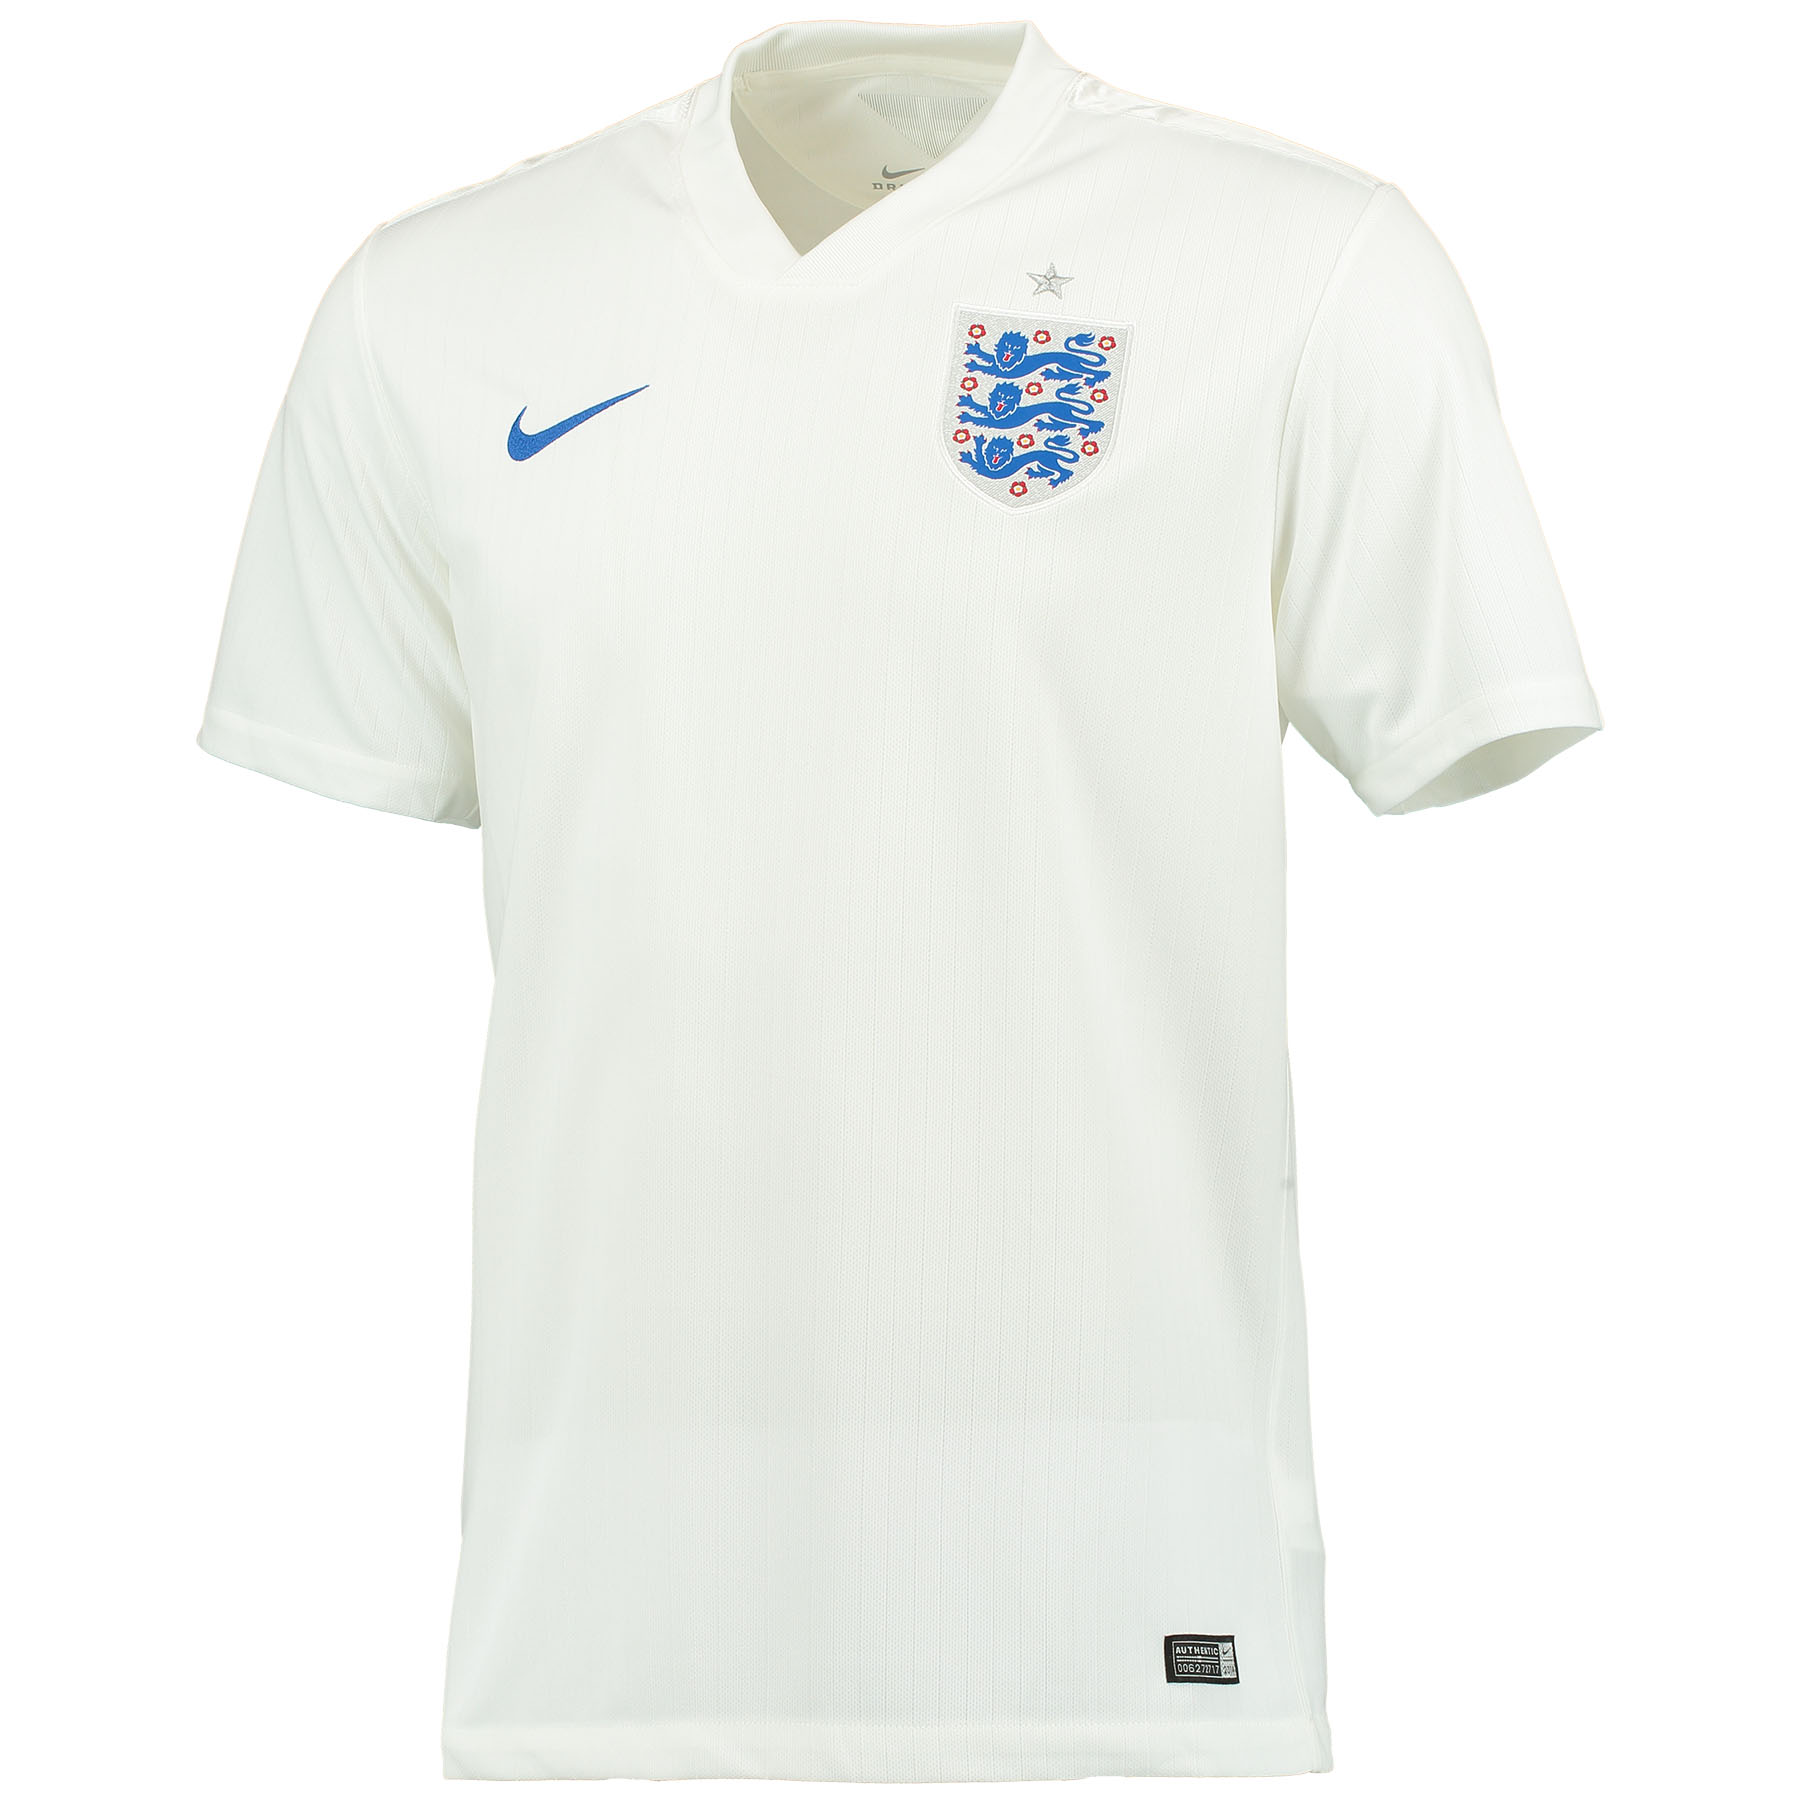 England Home Shirt 2014/15 White